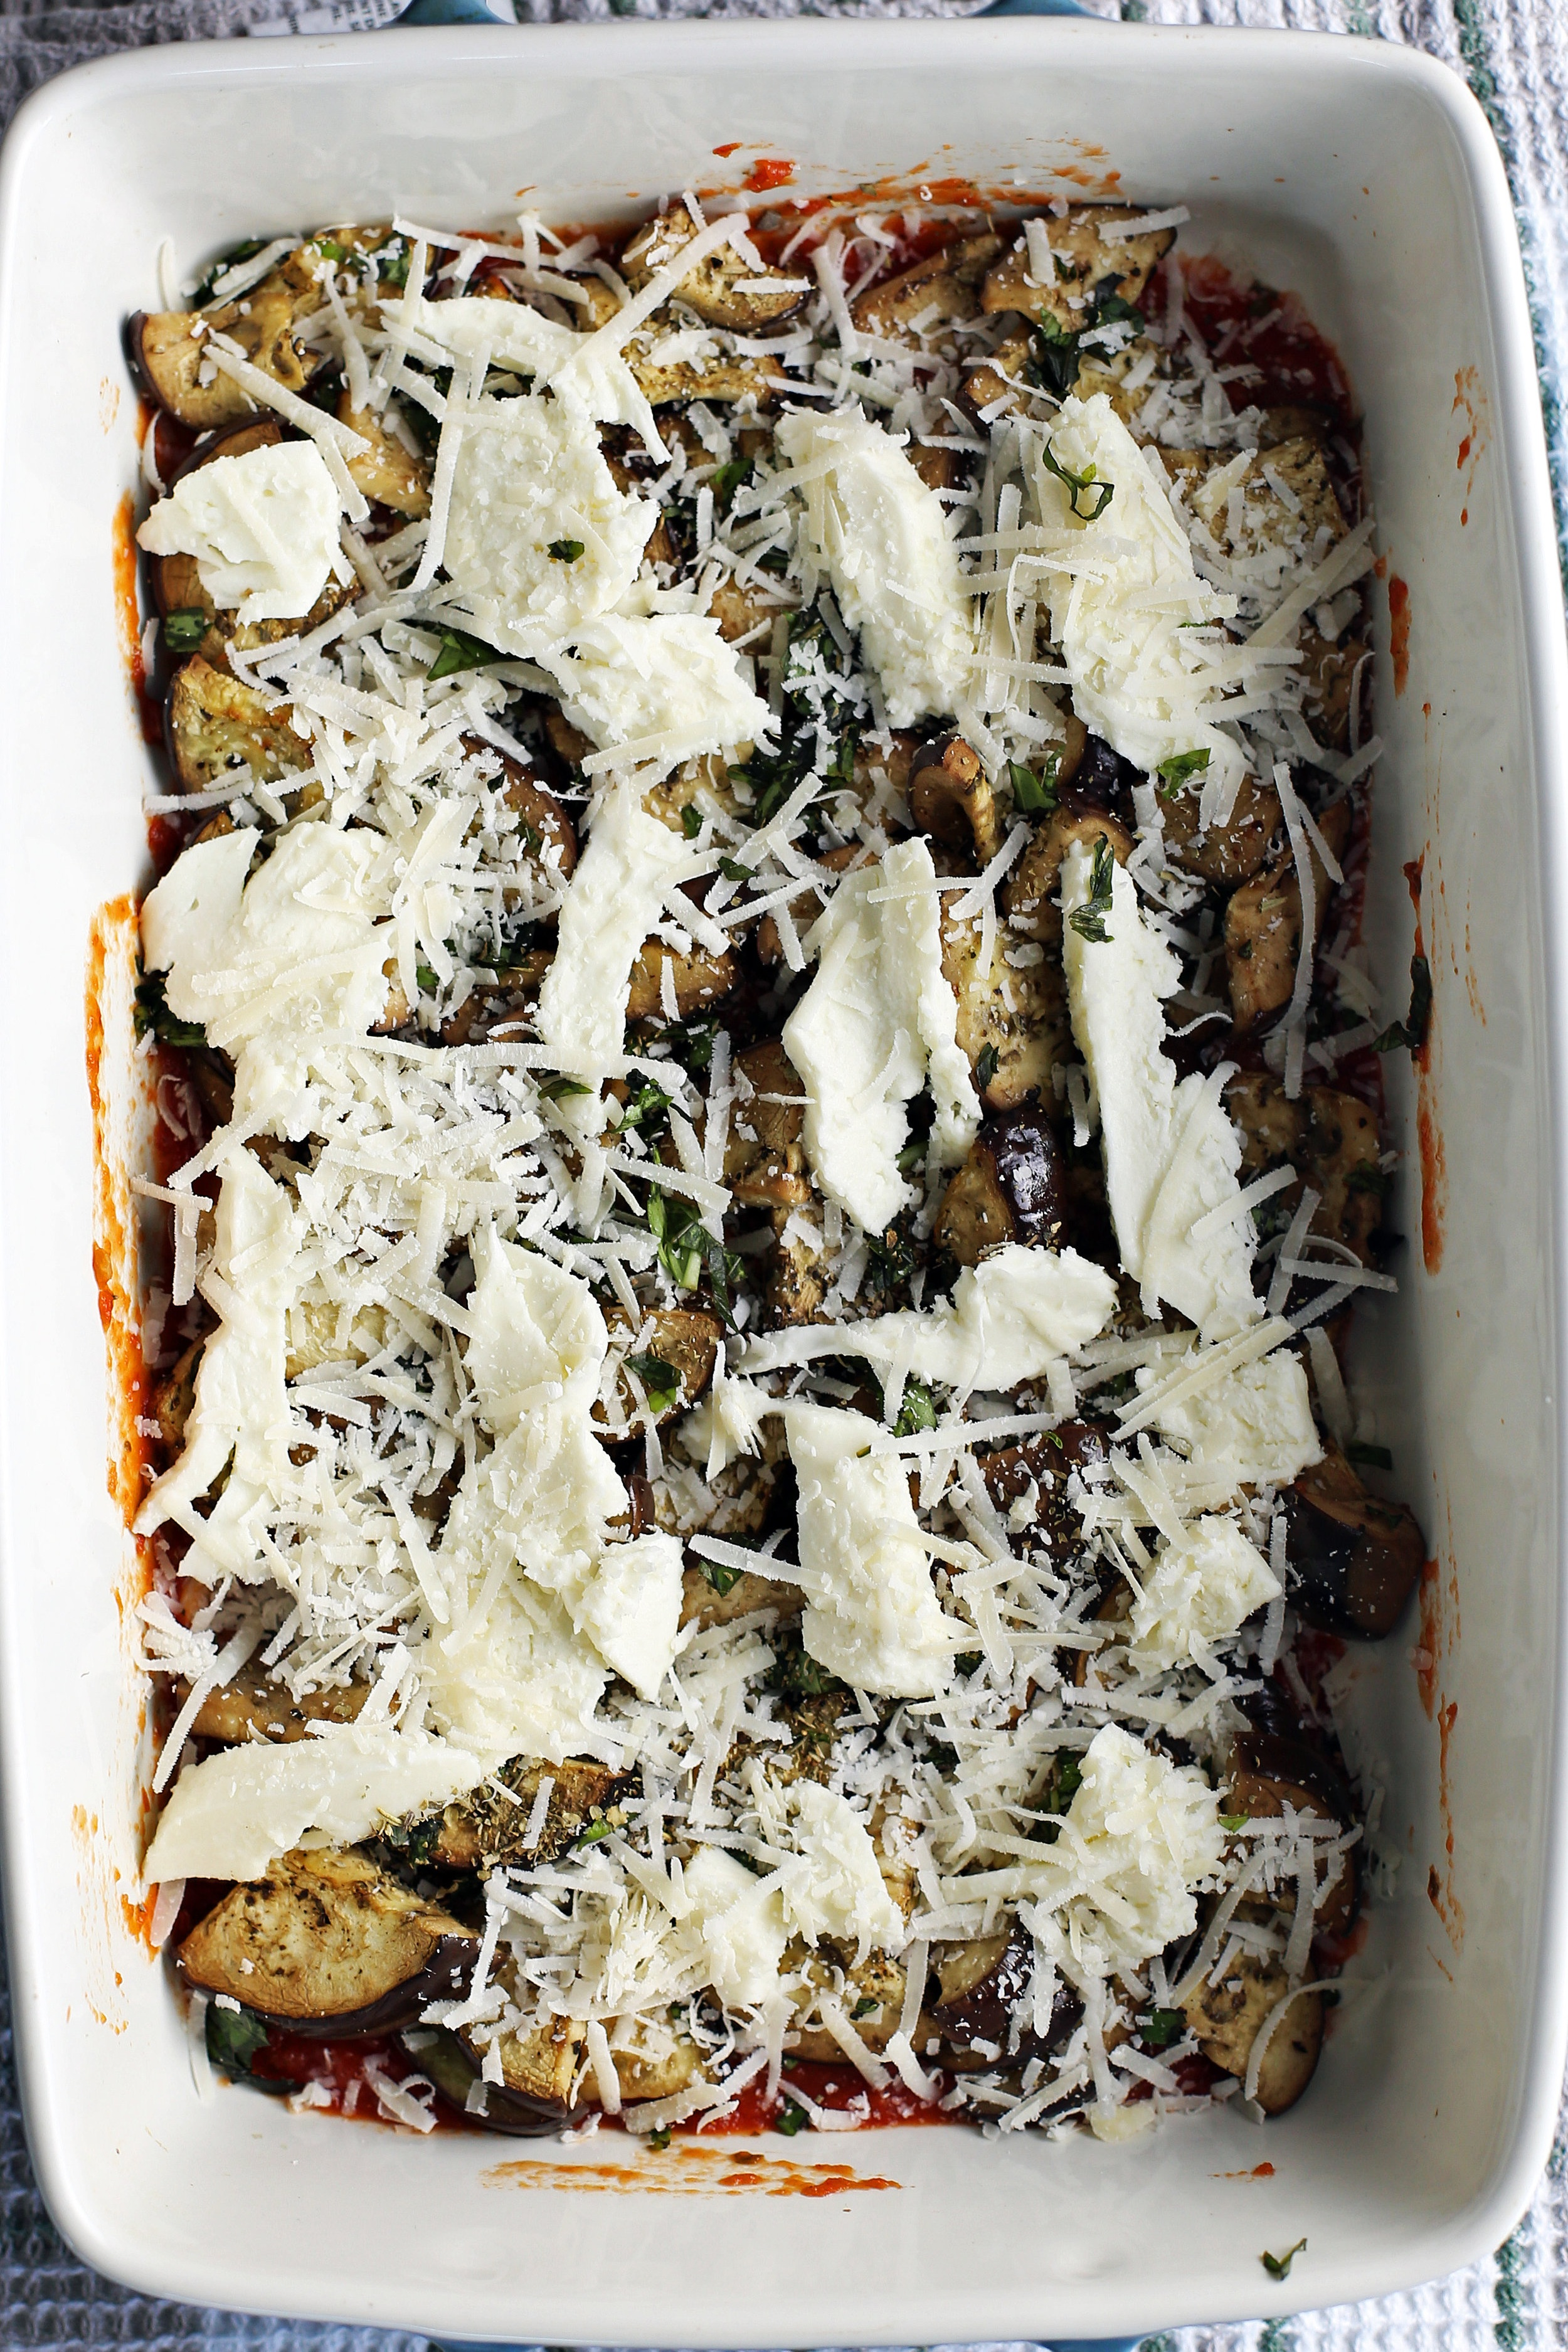 A large casserole dish containing layers of marinara sauce, sliced eggplant, herbs, and cheeses.